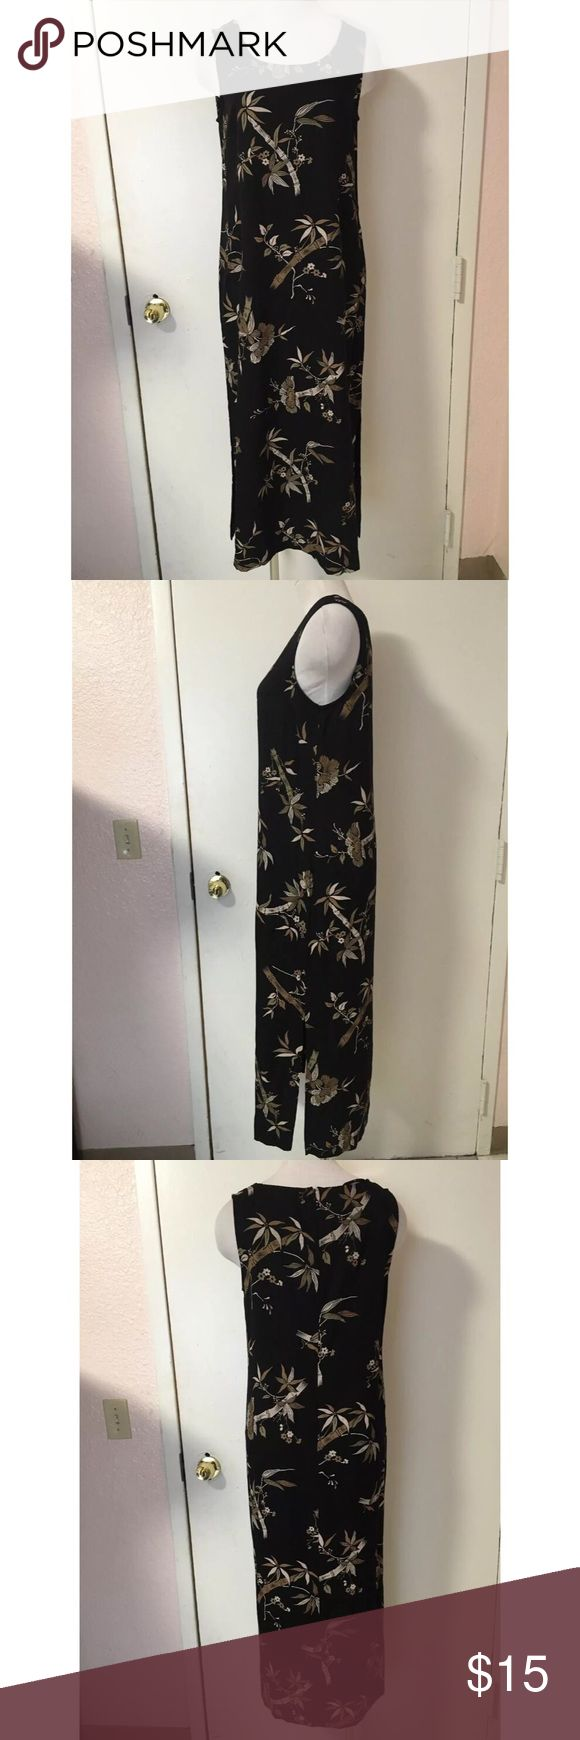 Dress Barn Black Hawaiian Maxi Dress Size 10 Previously Owned. In Good Condition. Size: 10 (Medium) Brand: Dress Barn Material: 75% Rayon 25% Polyester Dress Barn Dresses Maxi